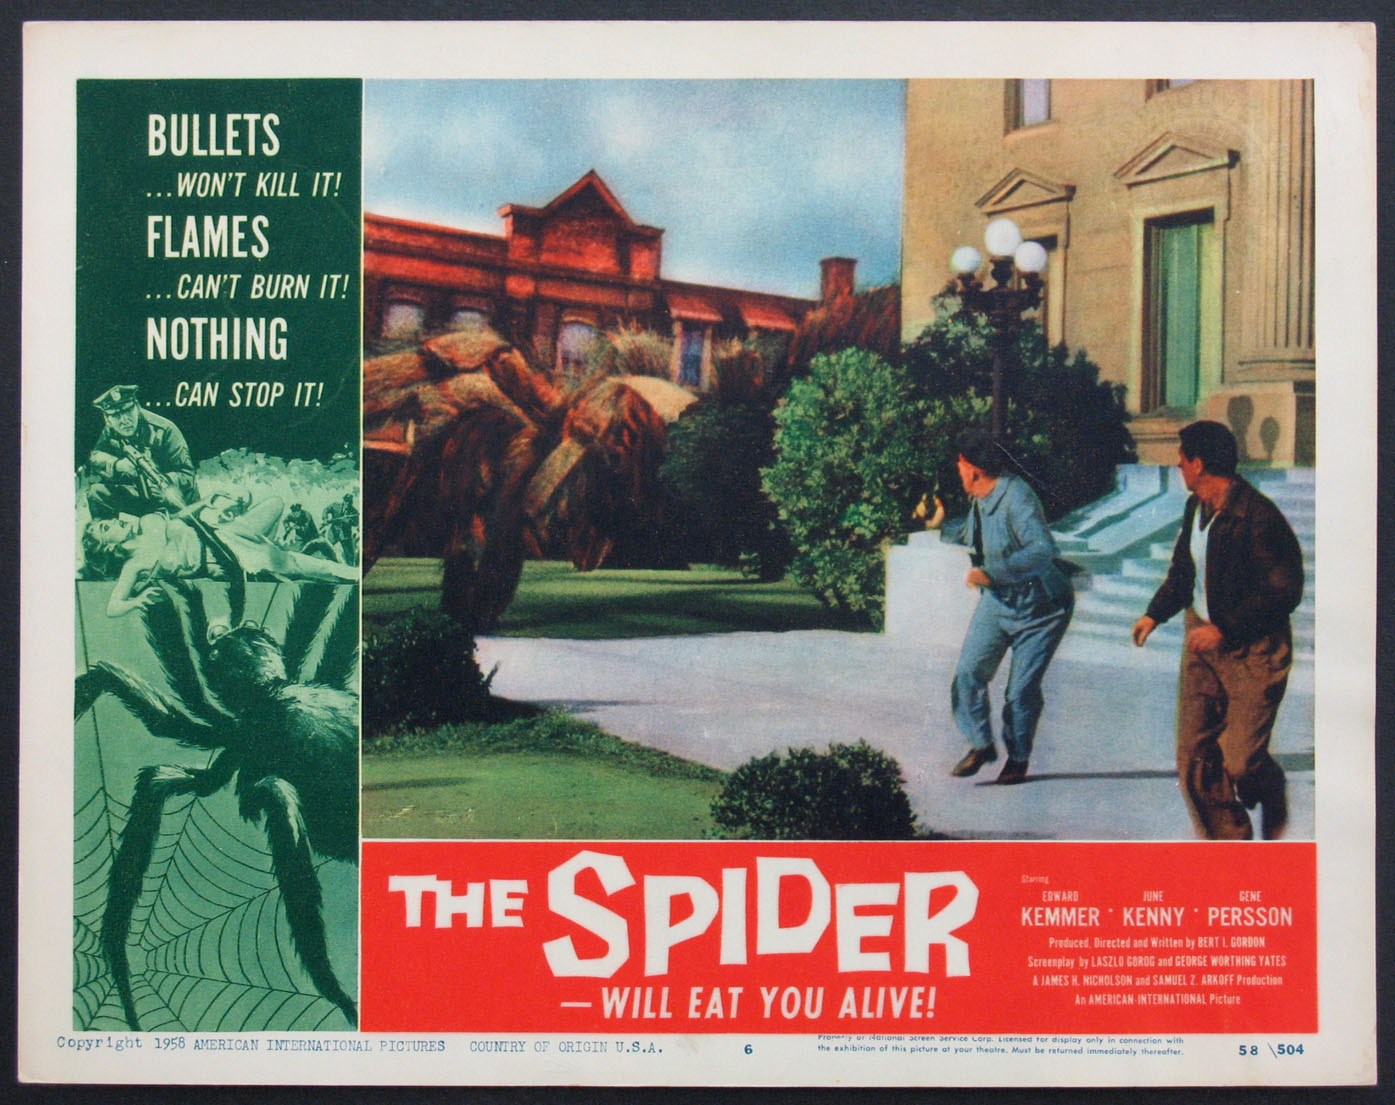 SPIDER, THE (The Spider) @ FilmPosters.com